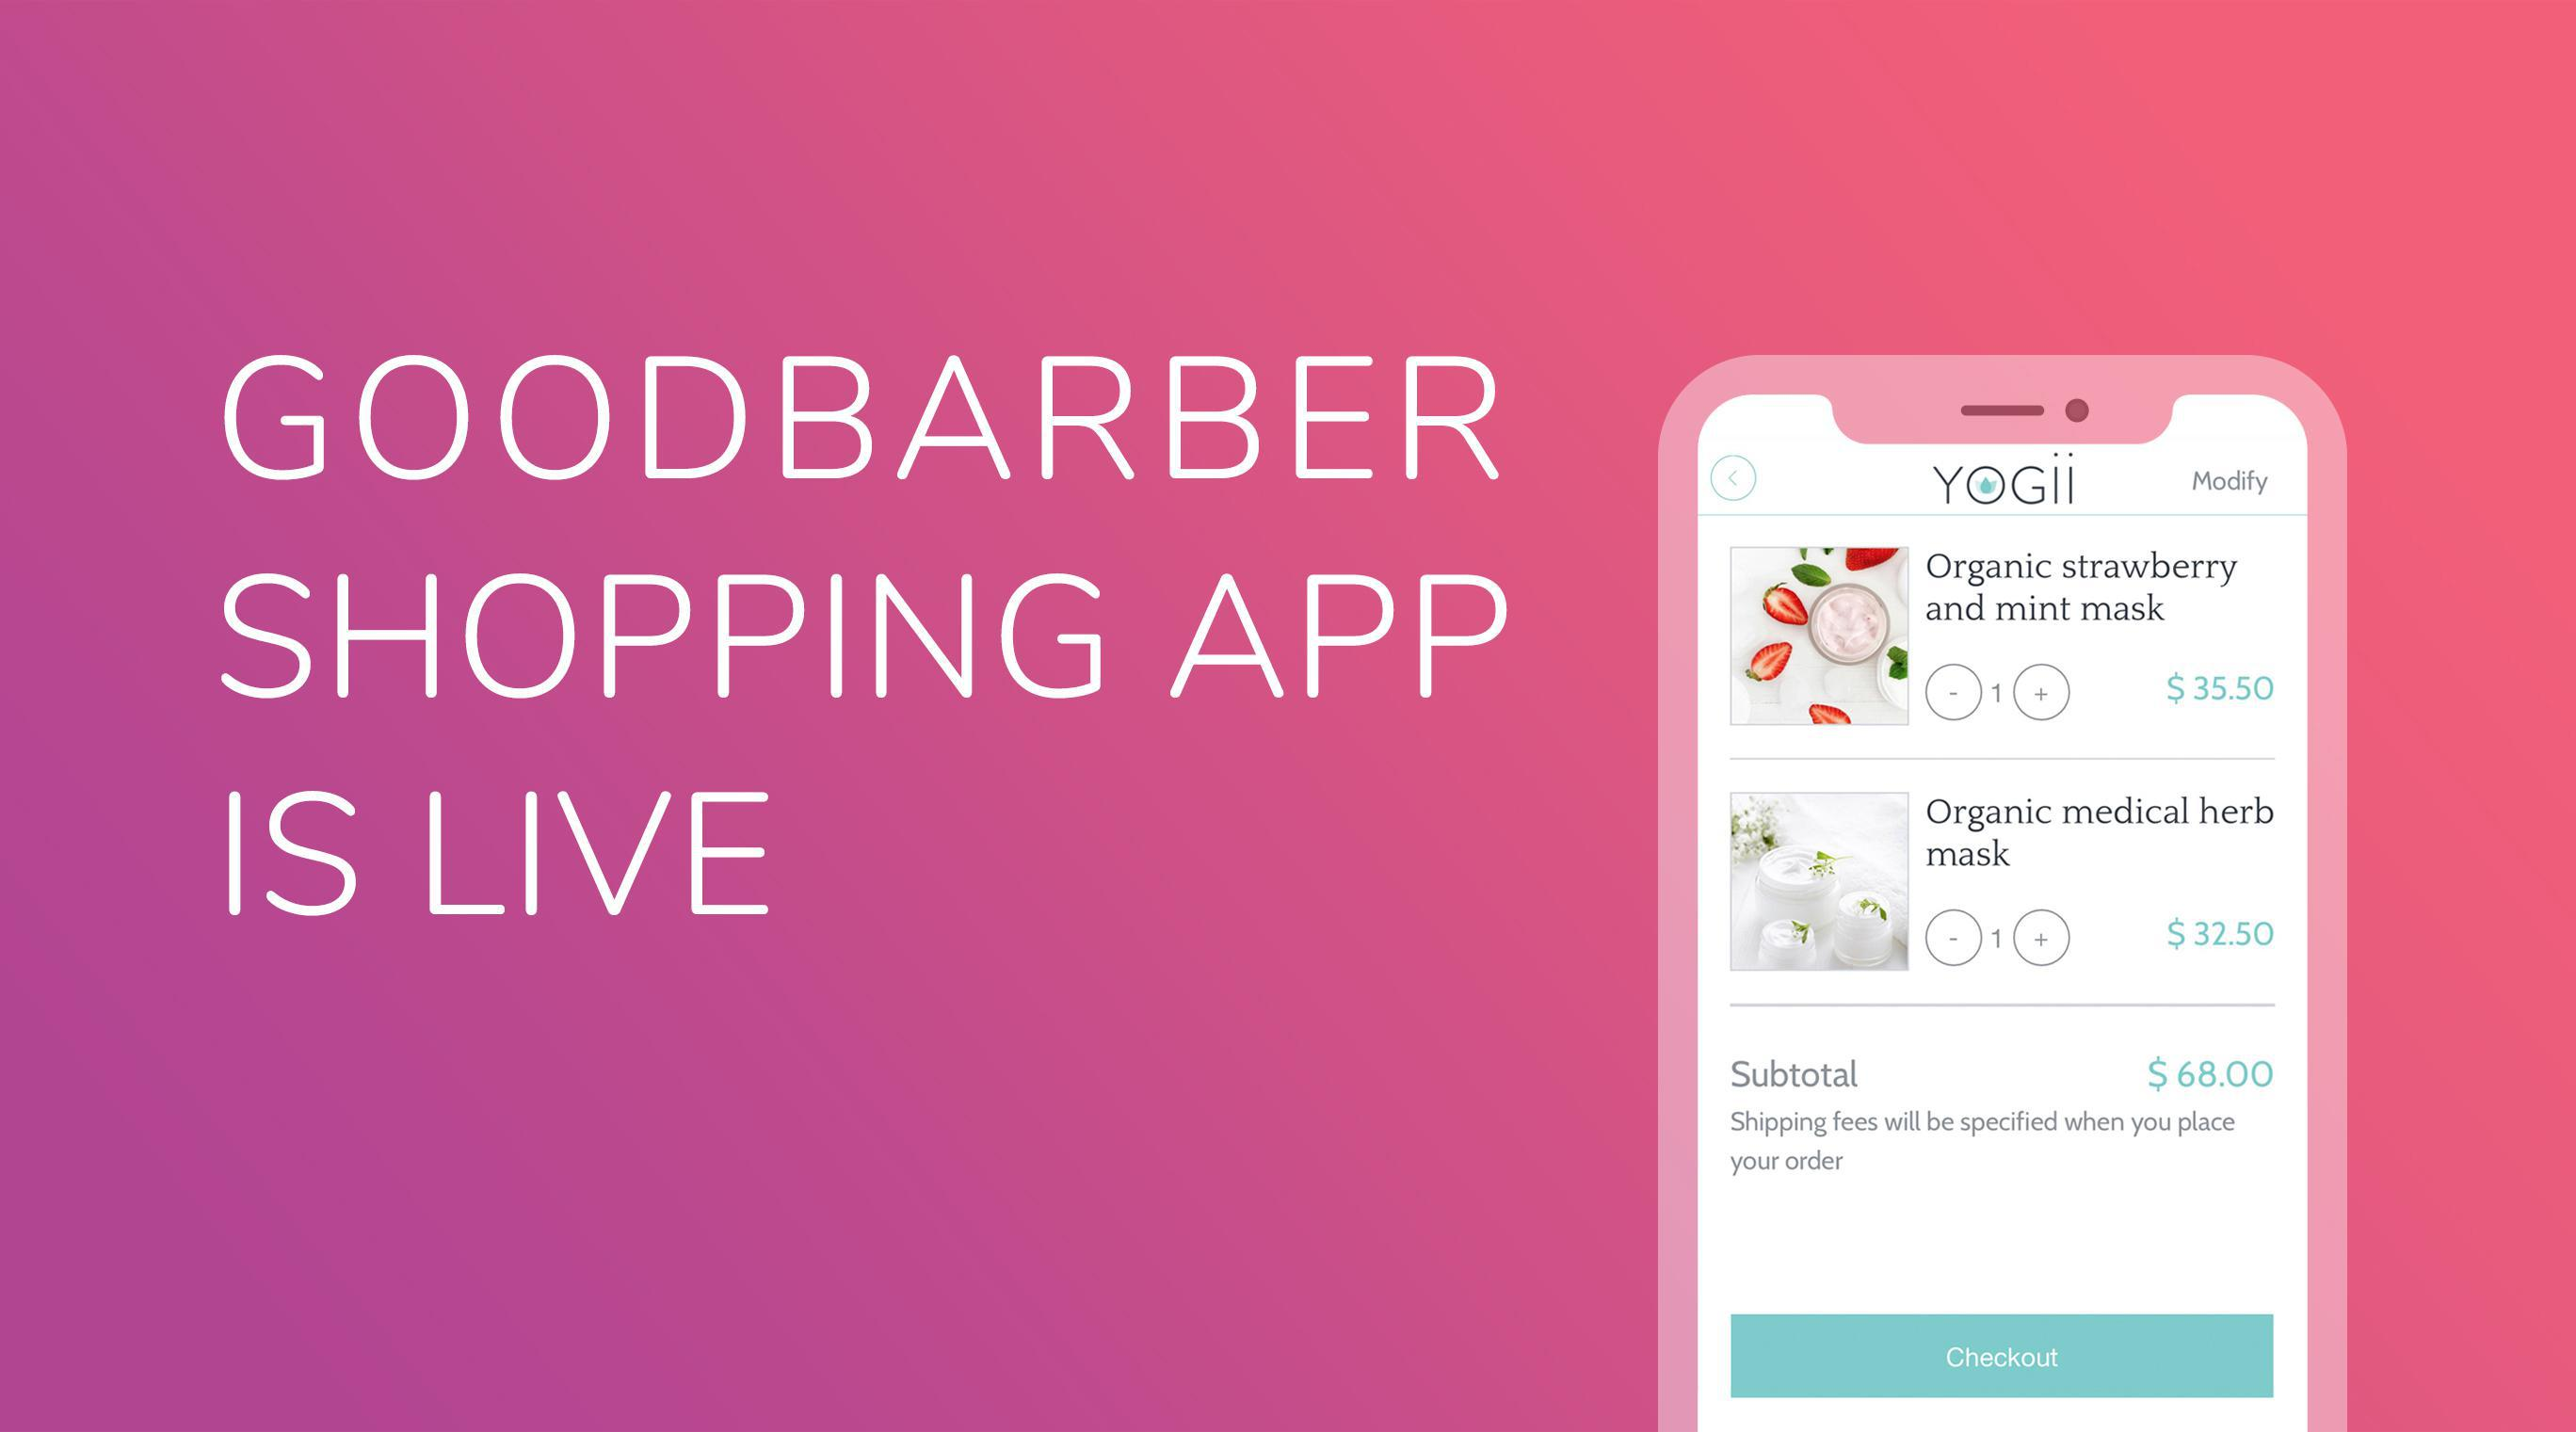 GoodBarber Shopping App has arrived!